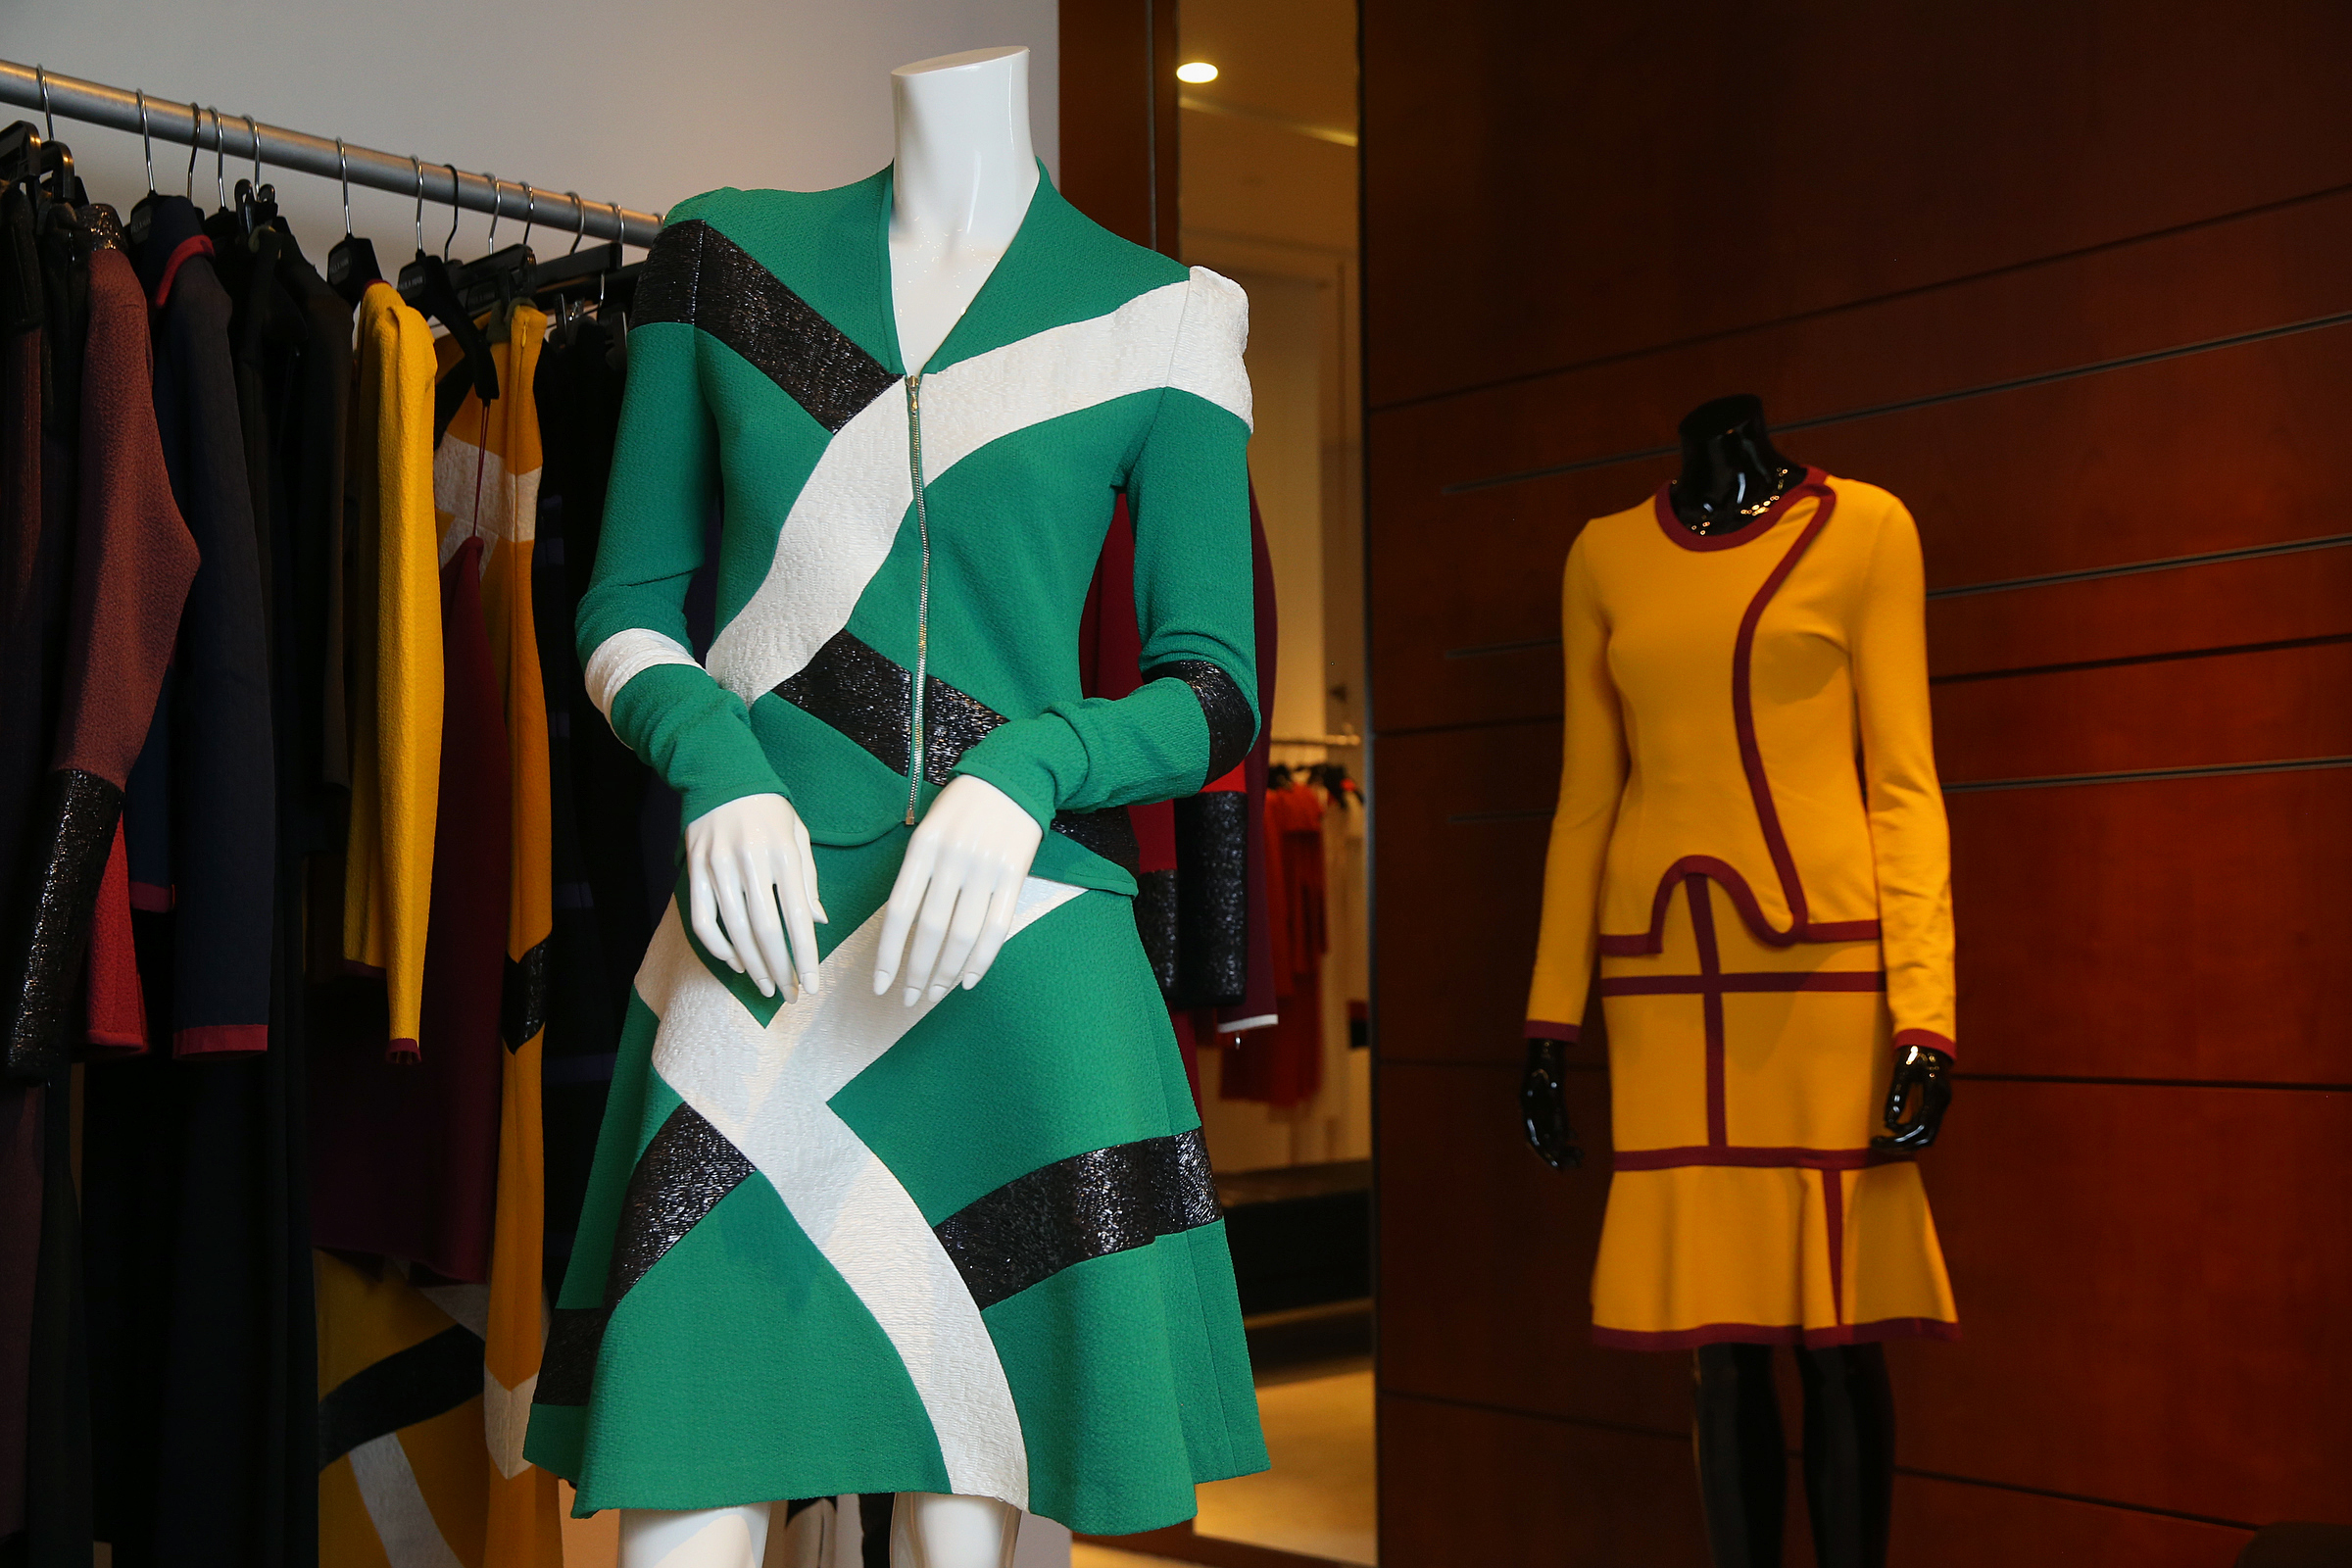 The Galatee jacket and vignette skirt, left, and Majori jacket and Naeva skirt, right, from the Fall 2018 collection are pictured at the Paula Hian store in the King of Prussia Mall on Friday, July 6, 2018. TIM TAI / Staff Photographer